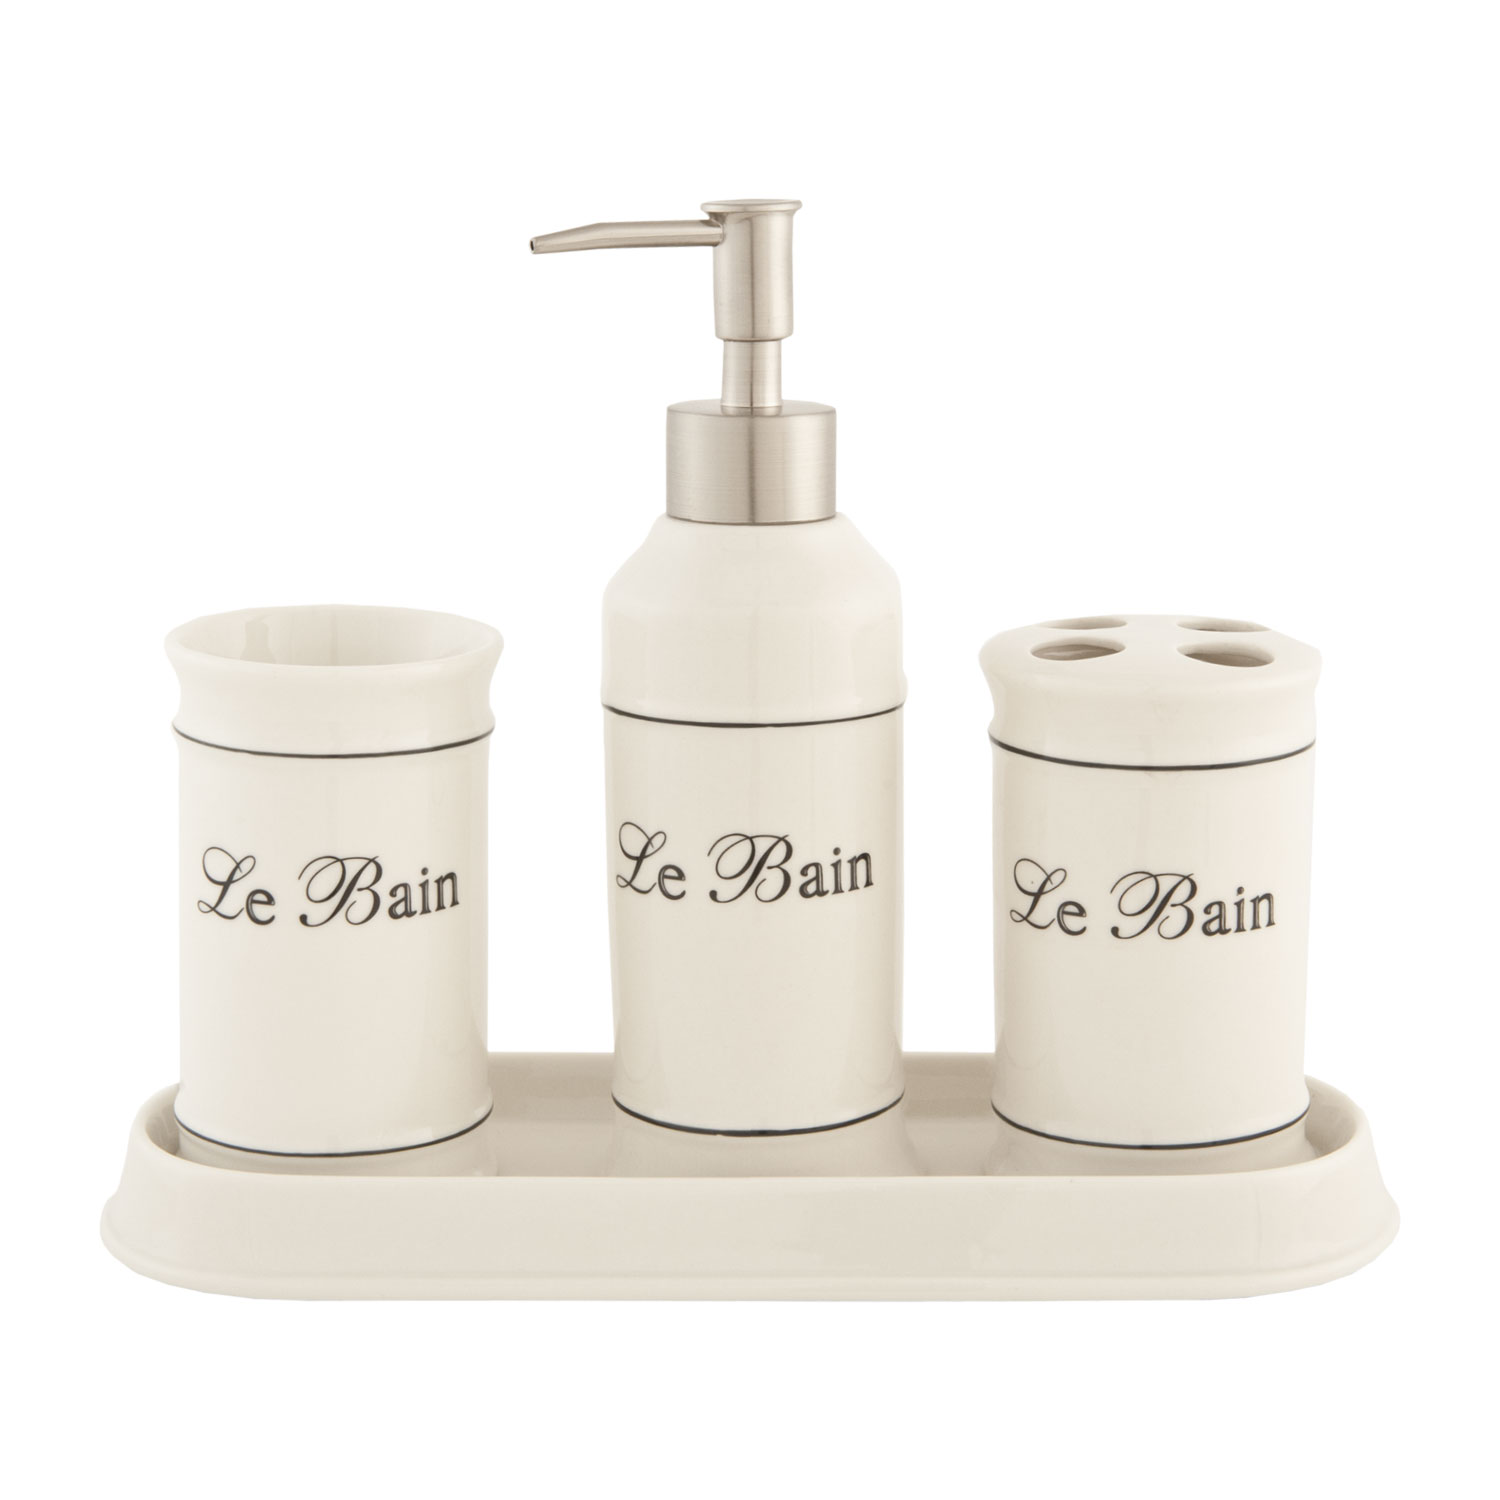 Bad Set Weiss Keramik Clayre And Eef 62474 Bad Set 4 Teilig Le Bain 4 Teilig Keramik